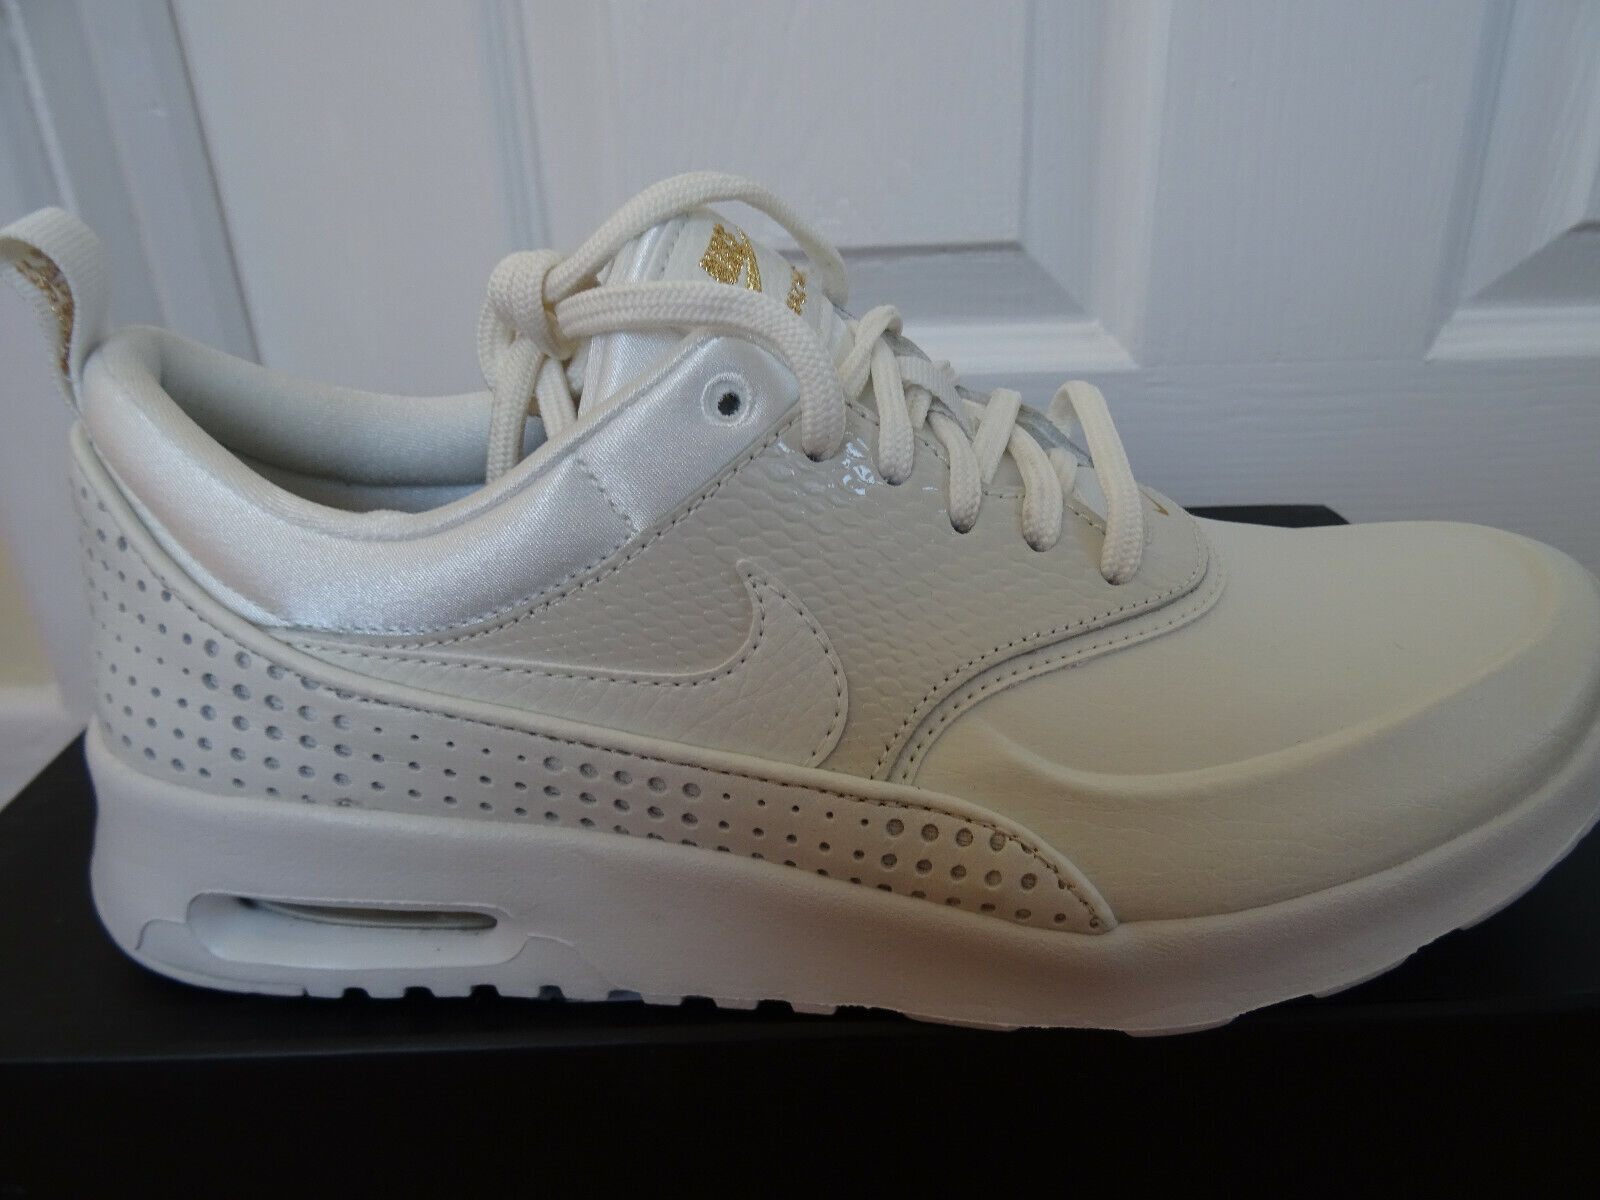 Nike Air Max Thea PRM QS Womens Running Trainers Aa1440 SNEAKERS Shoes 100 5.5 UK